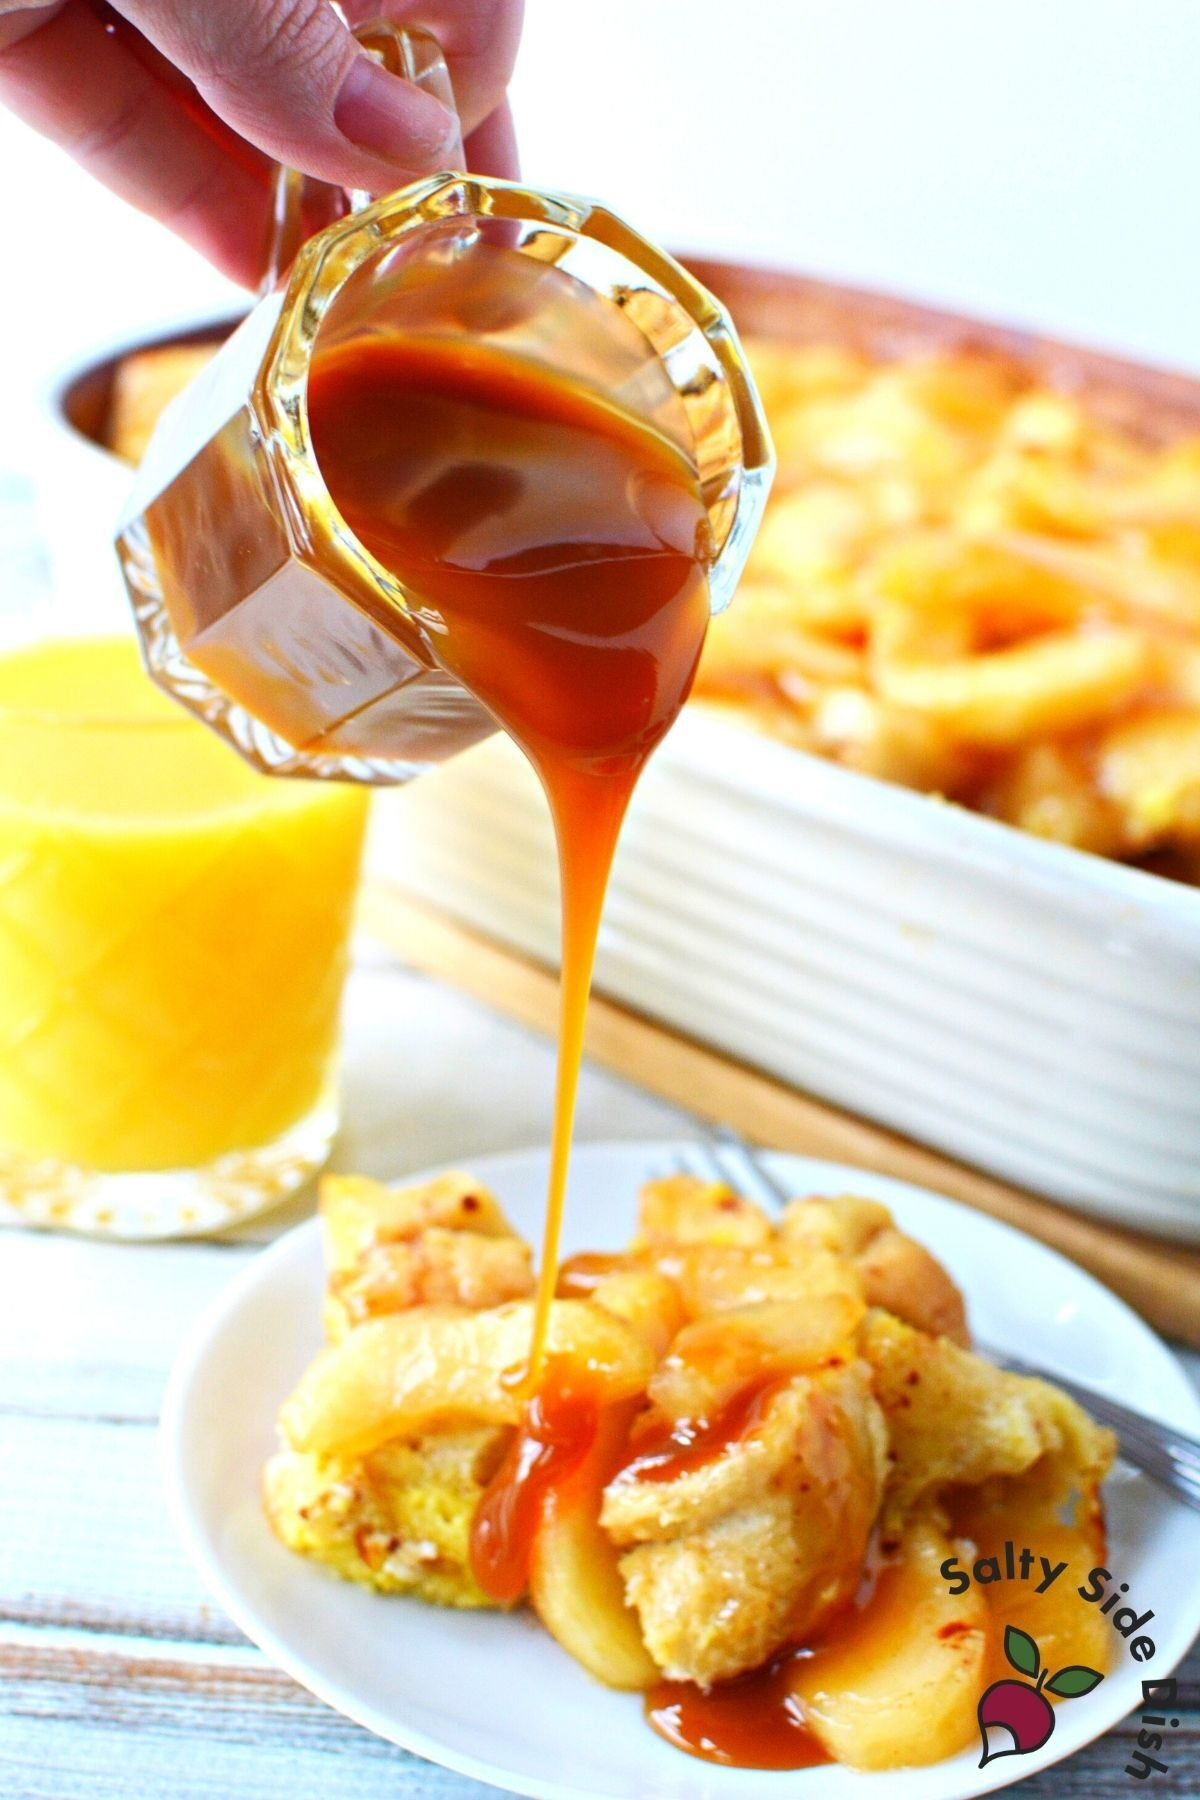 caramel drizzled over apple breakfast.